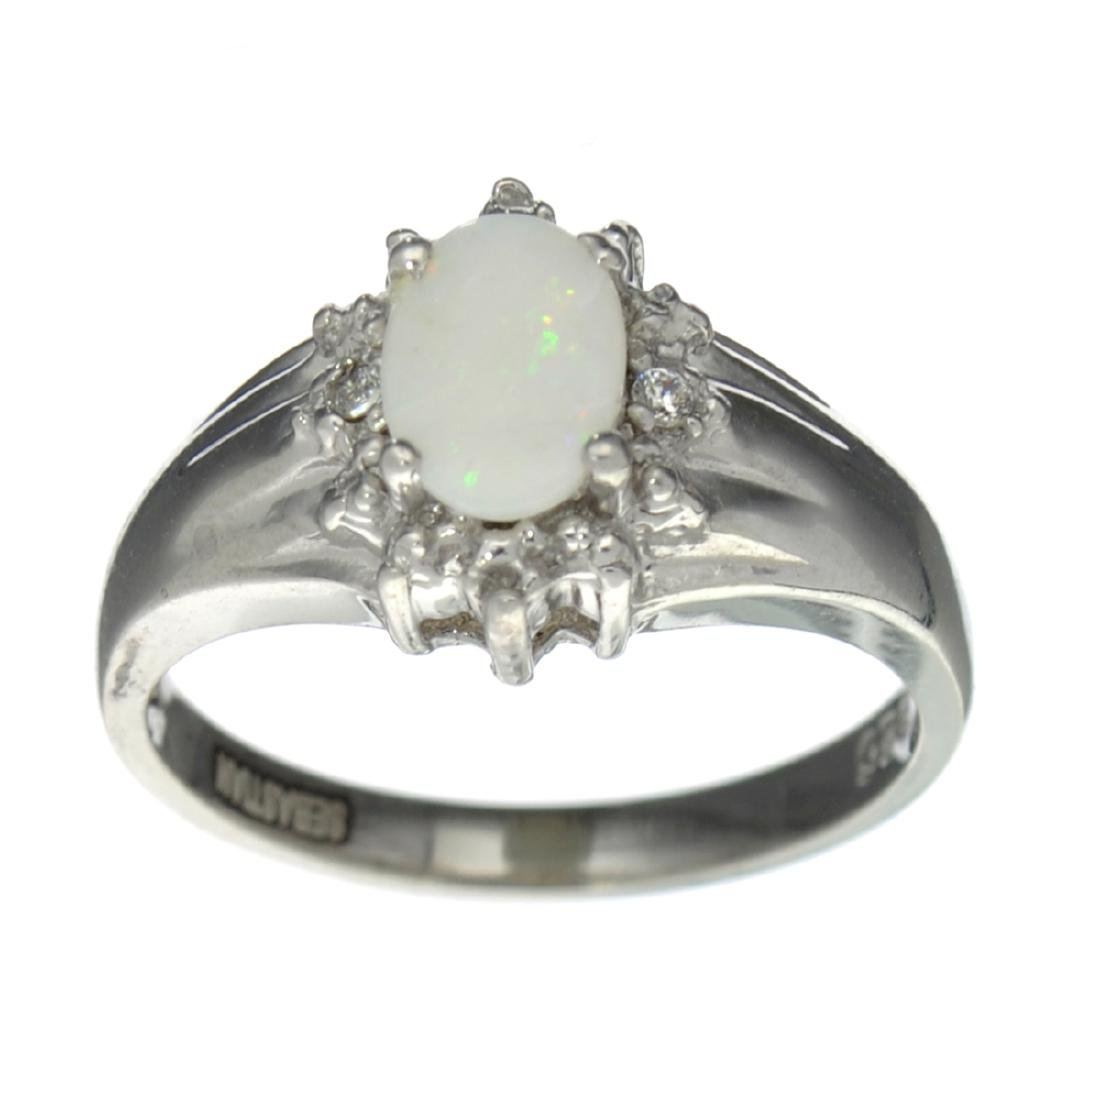 APP: 0.5k Fine Jewelry, 0.46CT Opal And White Topaz